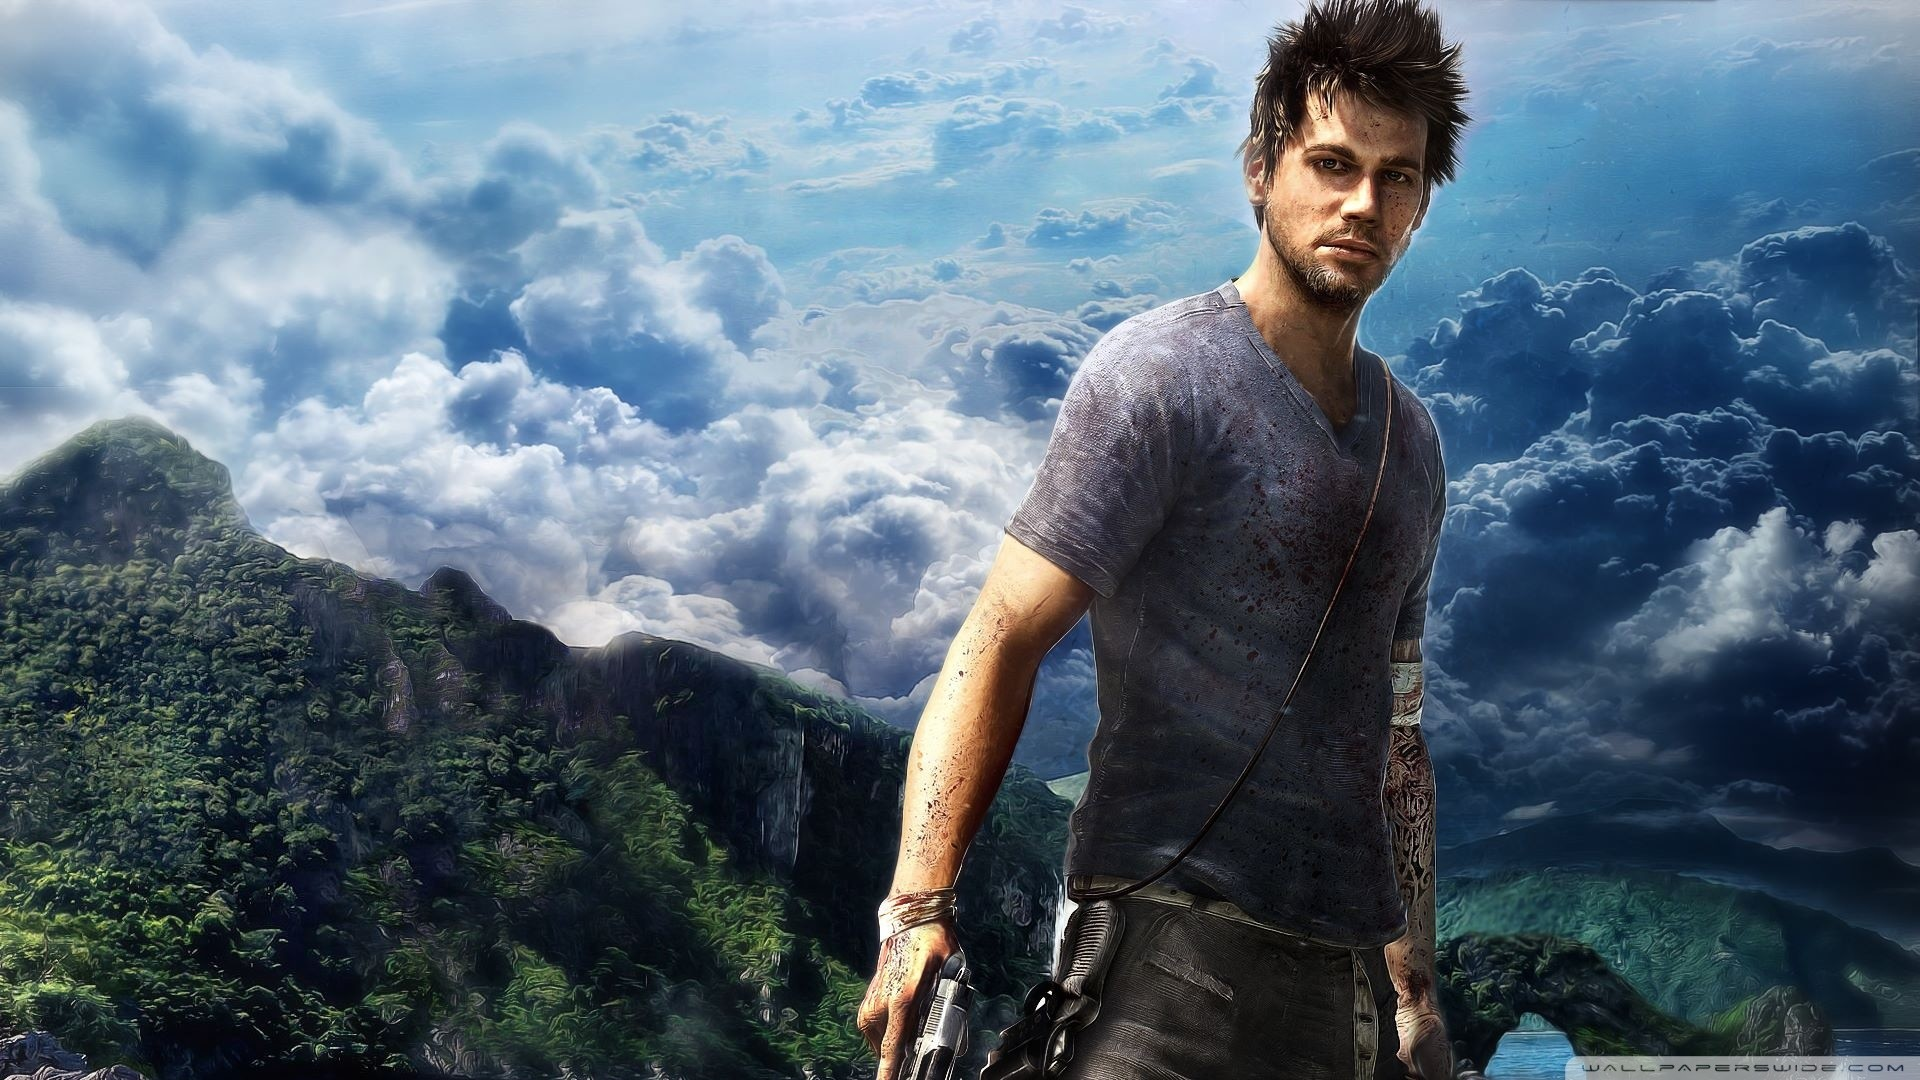 Published 21 January 2013 at 1920 × 1080 in Far Cry 3.